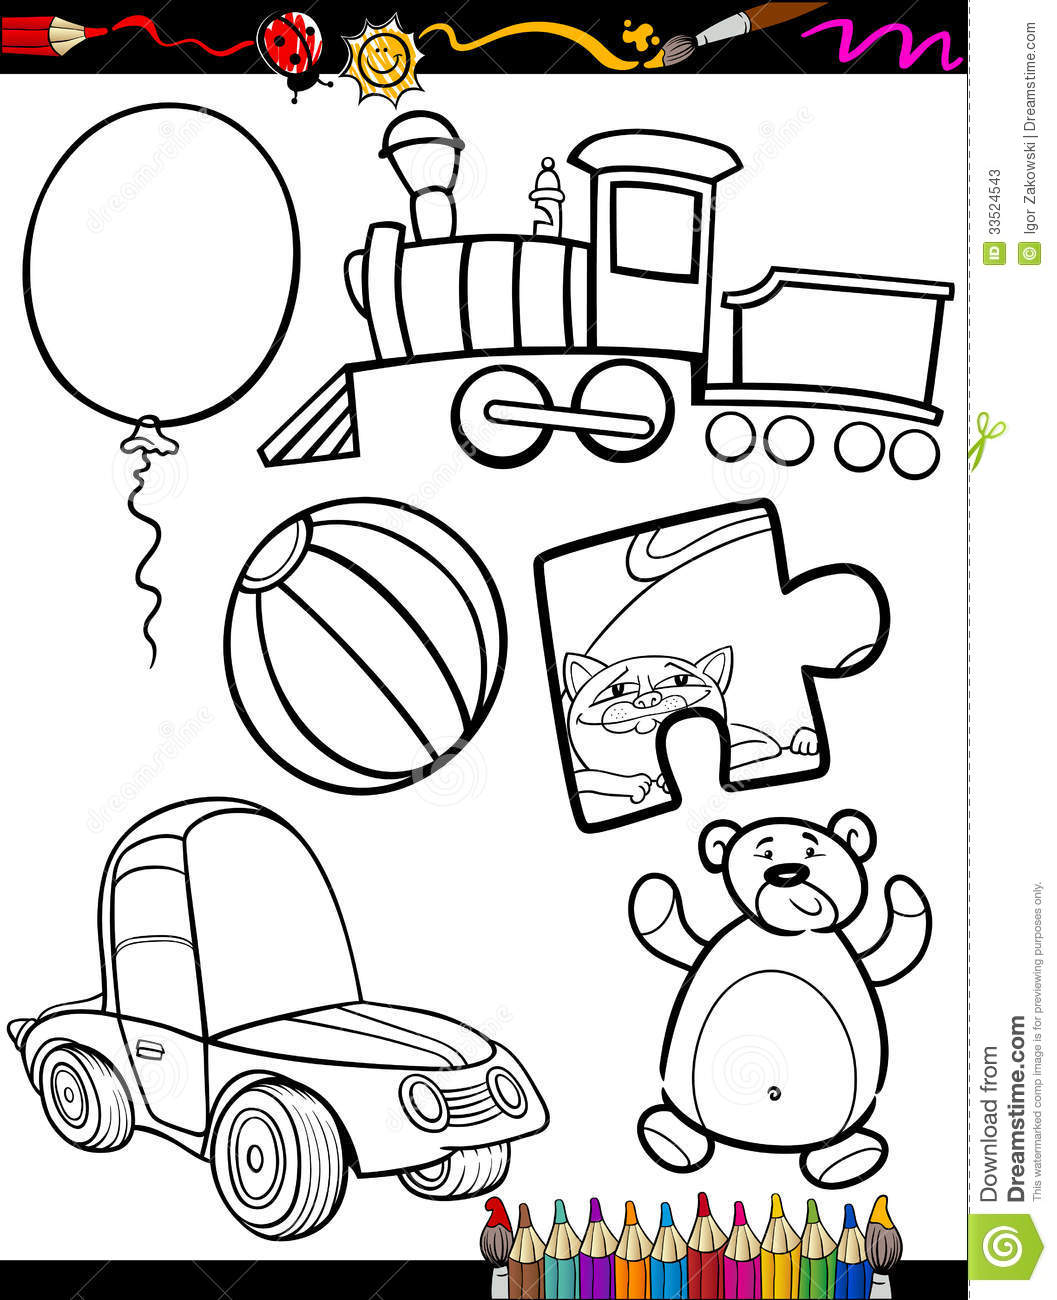 coloring book or page cartoon illustration of black and white toys